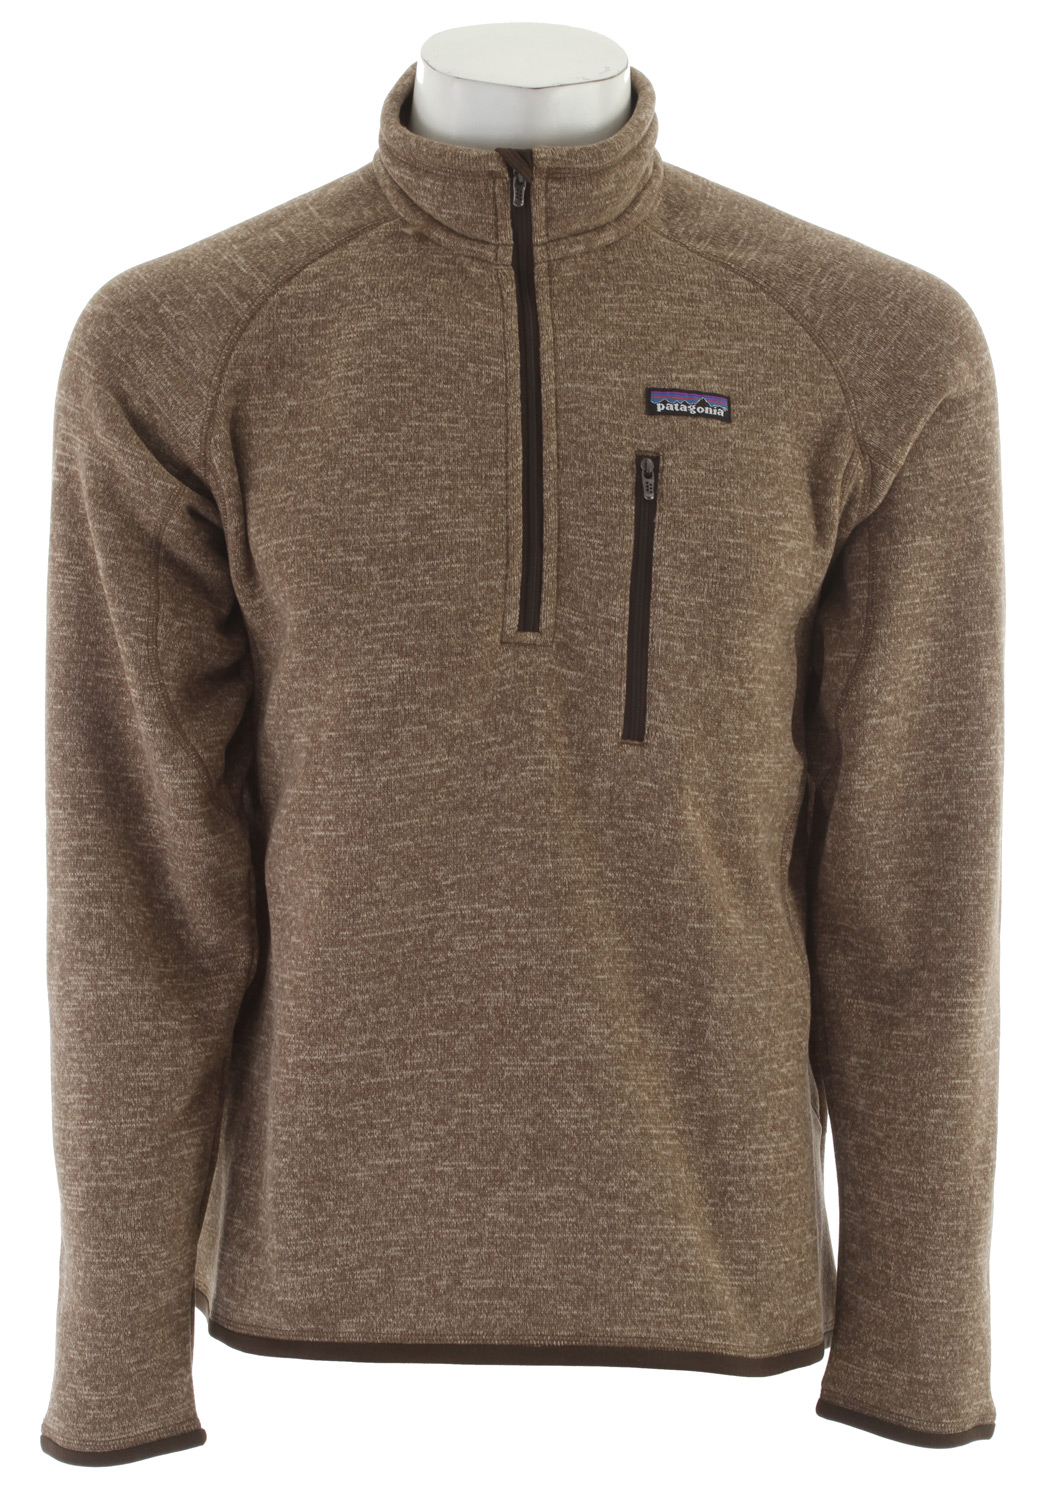 Wake A rugged, 1/4-zip fleece pullover that combines the aesthetic of wool with the easy care of polyester fleece. Wake up, check the buoys, slip on the Better Sweater 1/4-Zip and go. It's built of 9.5-oz polyester with a sweater-knit exterior and a fleece interior that creates an easy-wearing, moisture-wicking, bulk-free piece for handling the colder parts of the day. The stand-up collar has a zipper garage; raglan side and back seams make for a classic shape. Micro-polyester jersey trim at the collar, cuffs and hem wicks sweat, and a vertical zippered chest pocket secures keys and cash.Key Features of the Patagonia Better Sweater 1/4 Zip Fleece: Regular fit Fabric has a sweater-knit face, fleece interior and heathered yarns 1/4-zip pullover with stand-up collar and zipper garage Raglan sleeves for pack-wearing comfort Zippered chest pocket Micropolyester jersey trim on cuffs, hem and back of neck Can be worn with layers as outerwear in cold conditions, or as a midlayer under a shell jacket Hip length 9.5-oz 100% polyester with a sweater-knit exterior and a fleece interior 490 g (17.3 oz) Made in Thailand. - $89.95